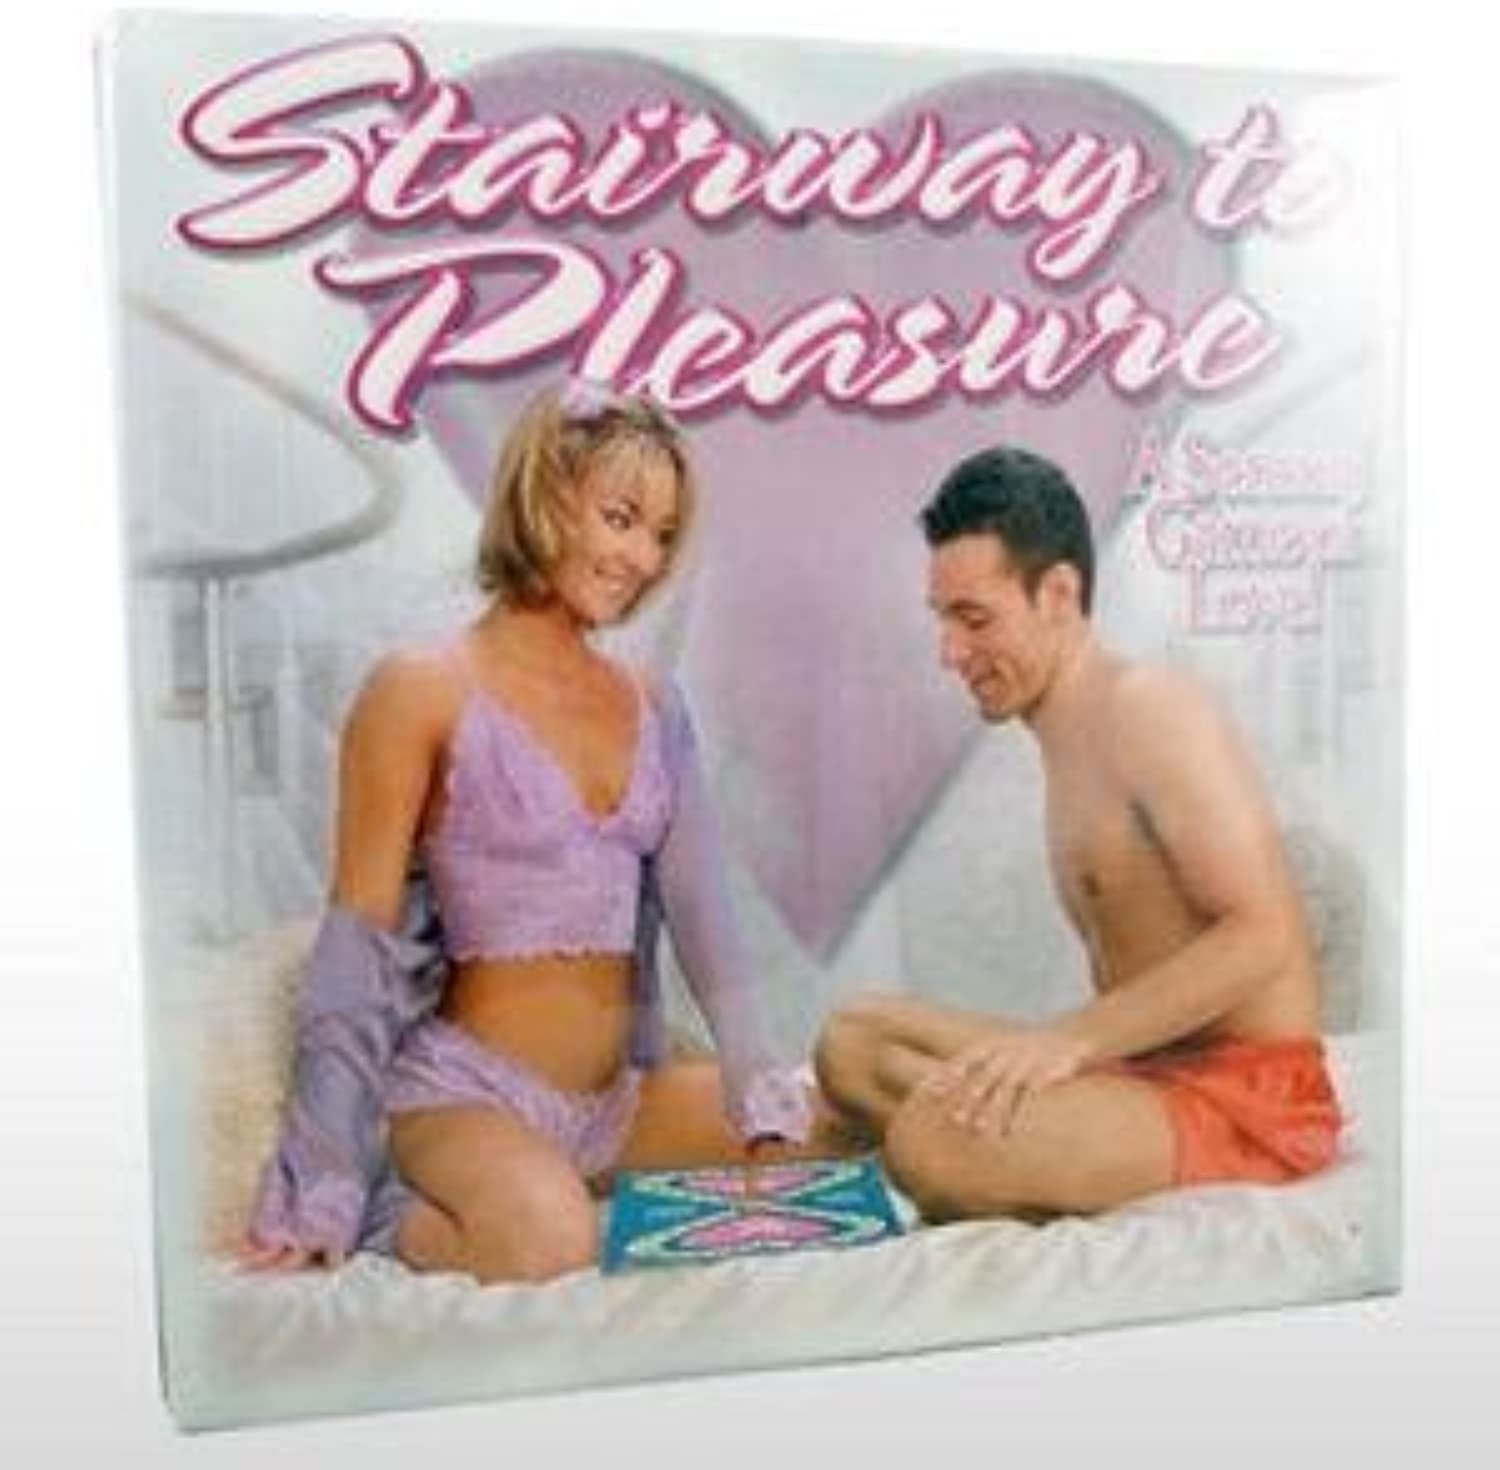 Stairway To Pleasure Game by PrankPlace